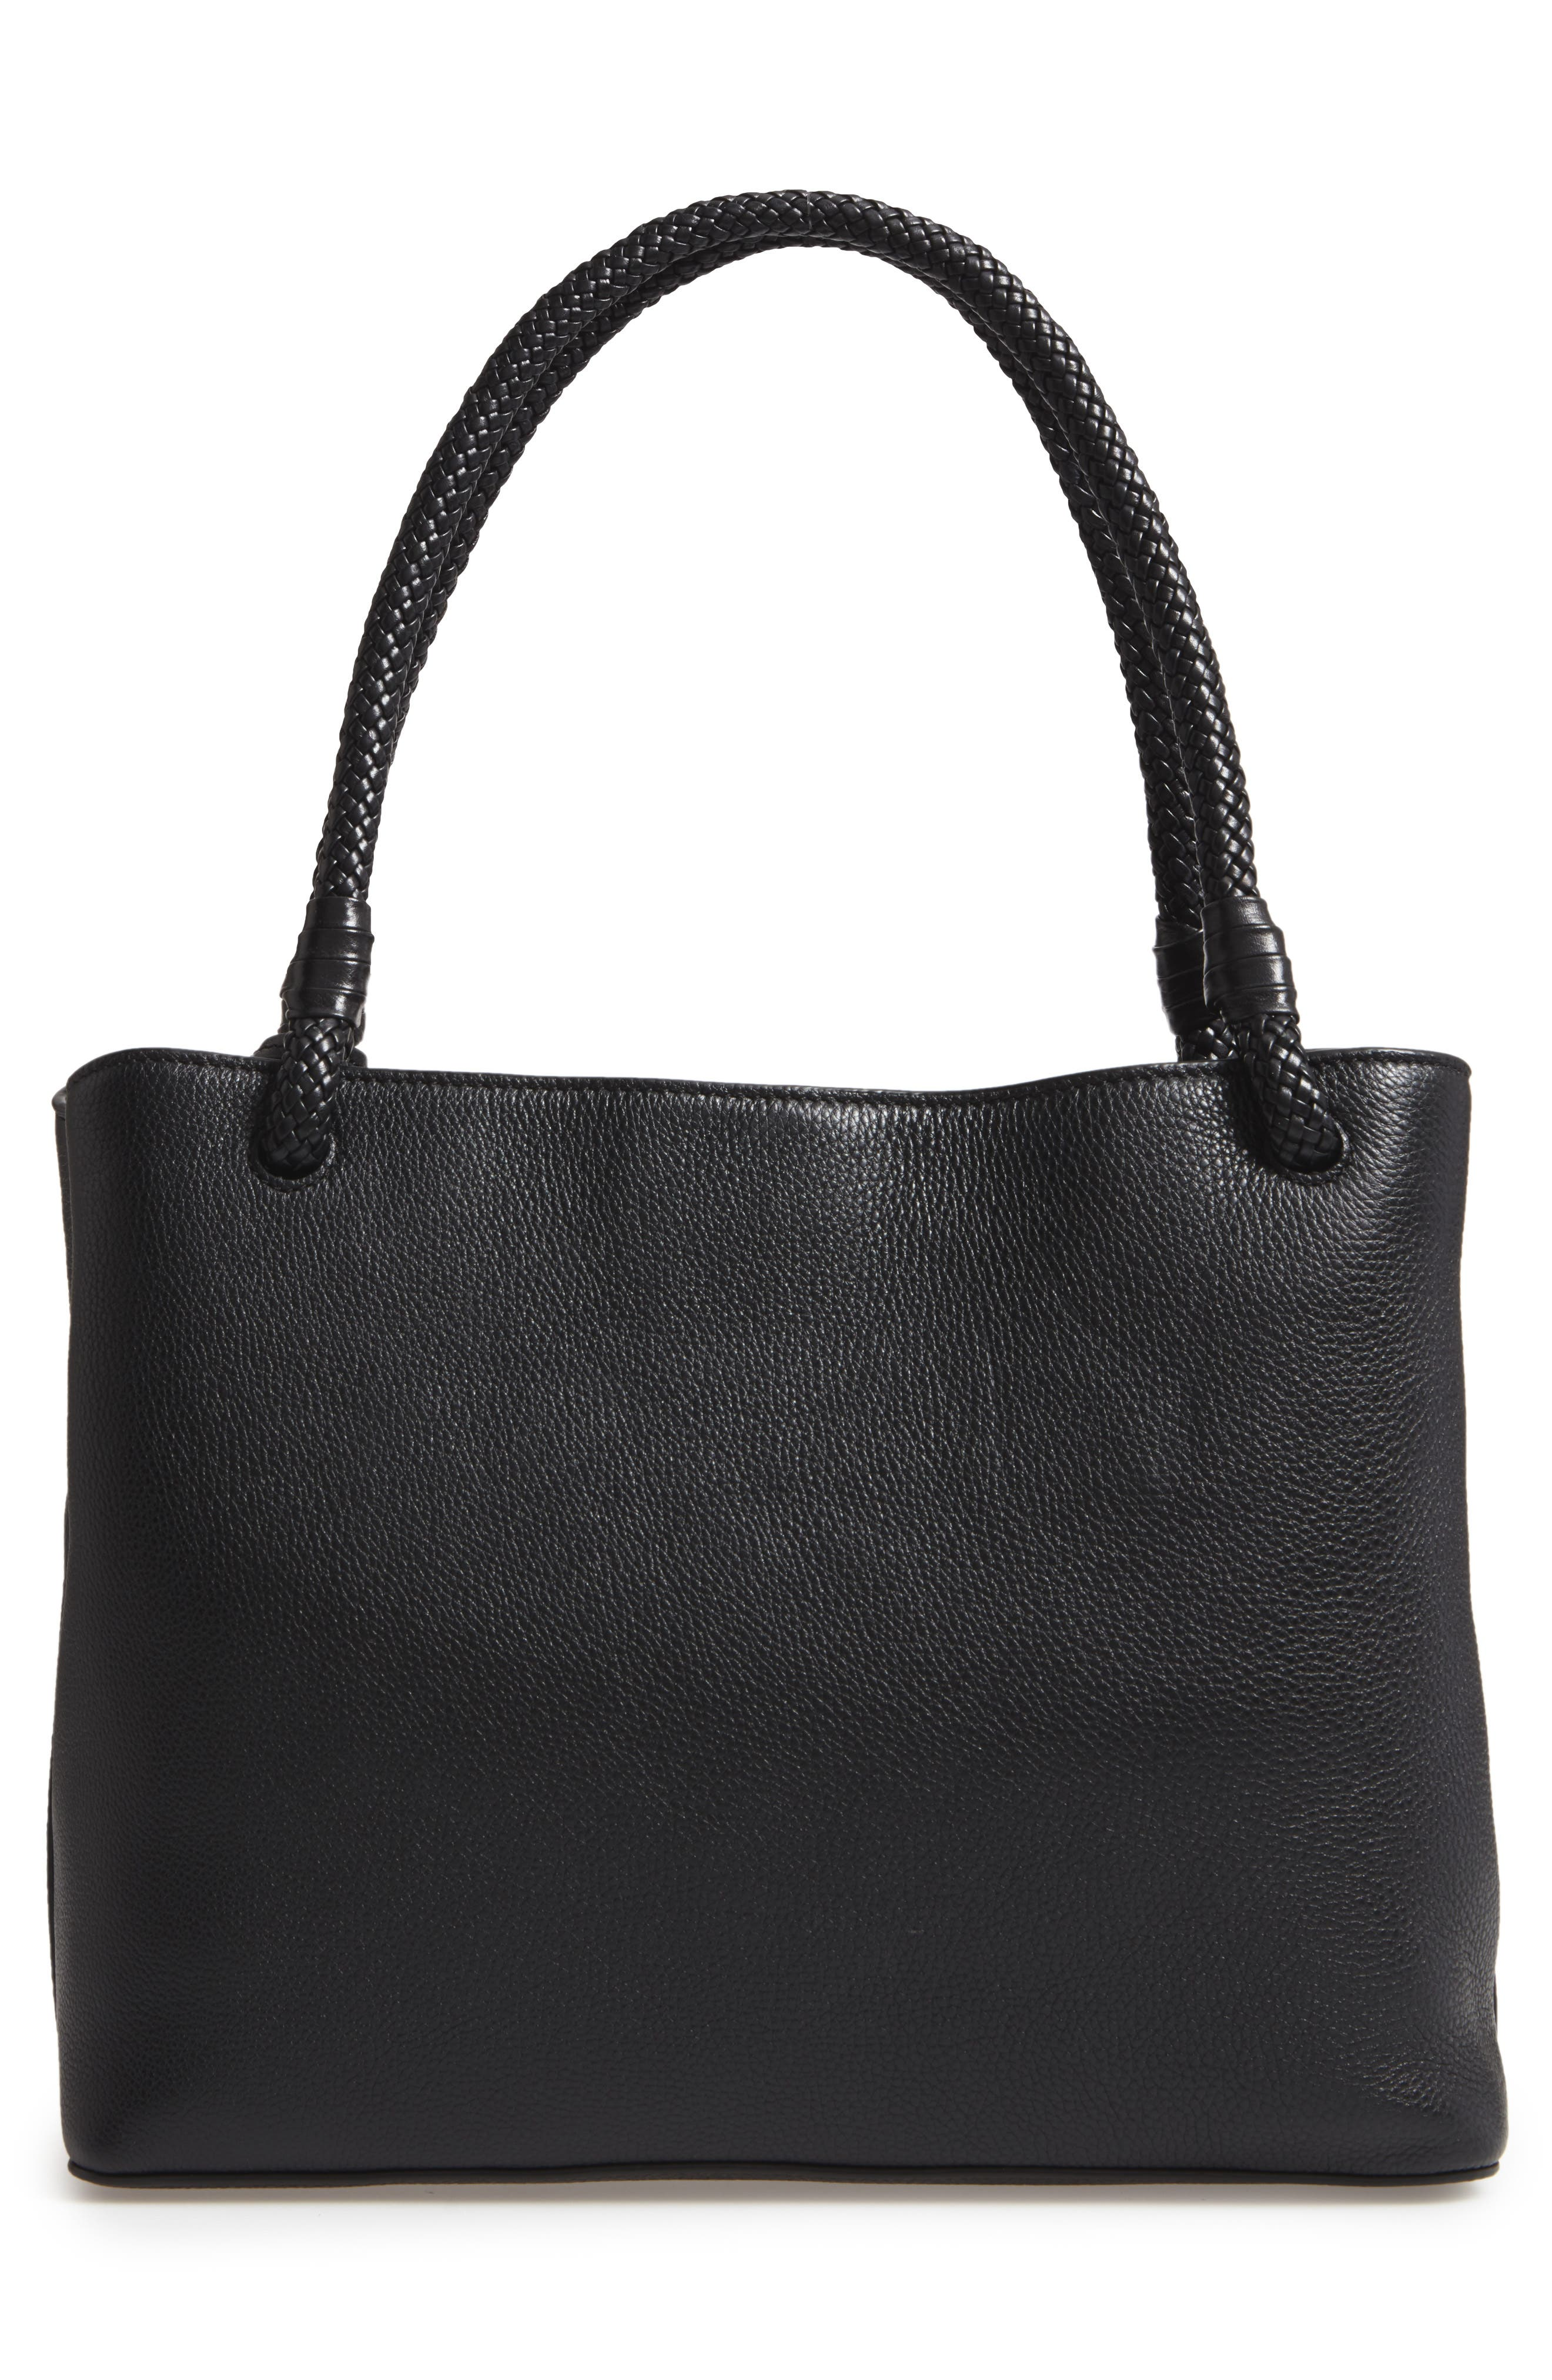 Taylor Triple-Compartment Leather Tote,                             Alternate thumbnail 3, color,                             001